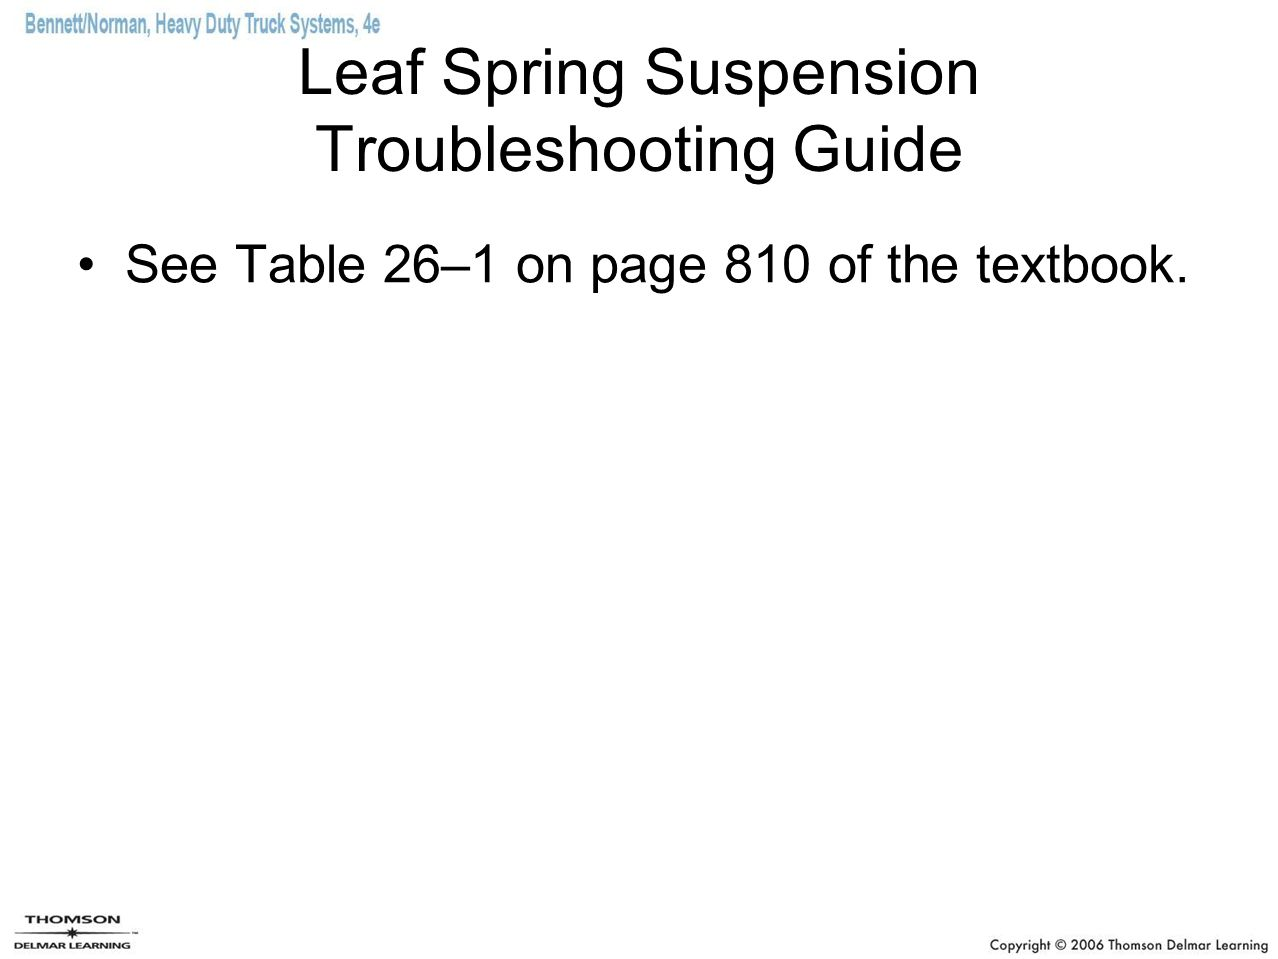 Leaf Spring Suspension Troubleshooting Guide